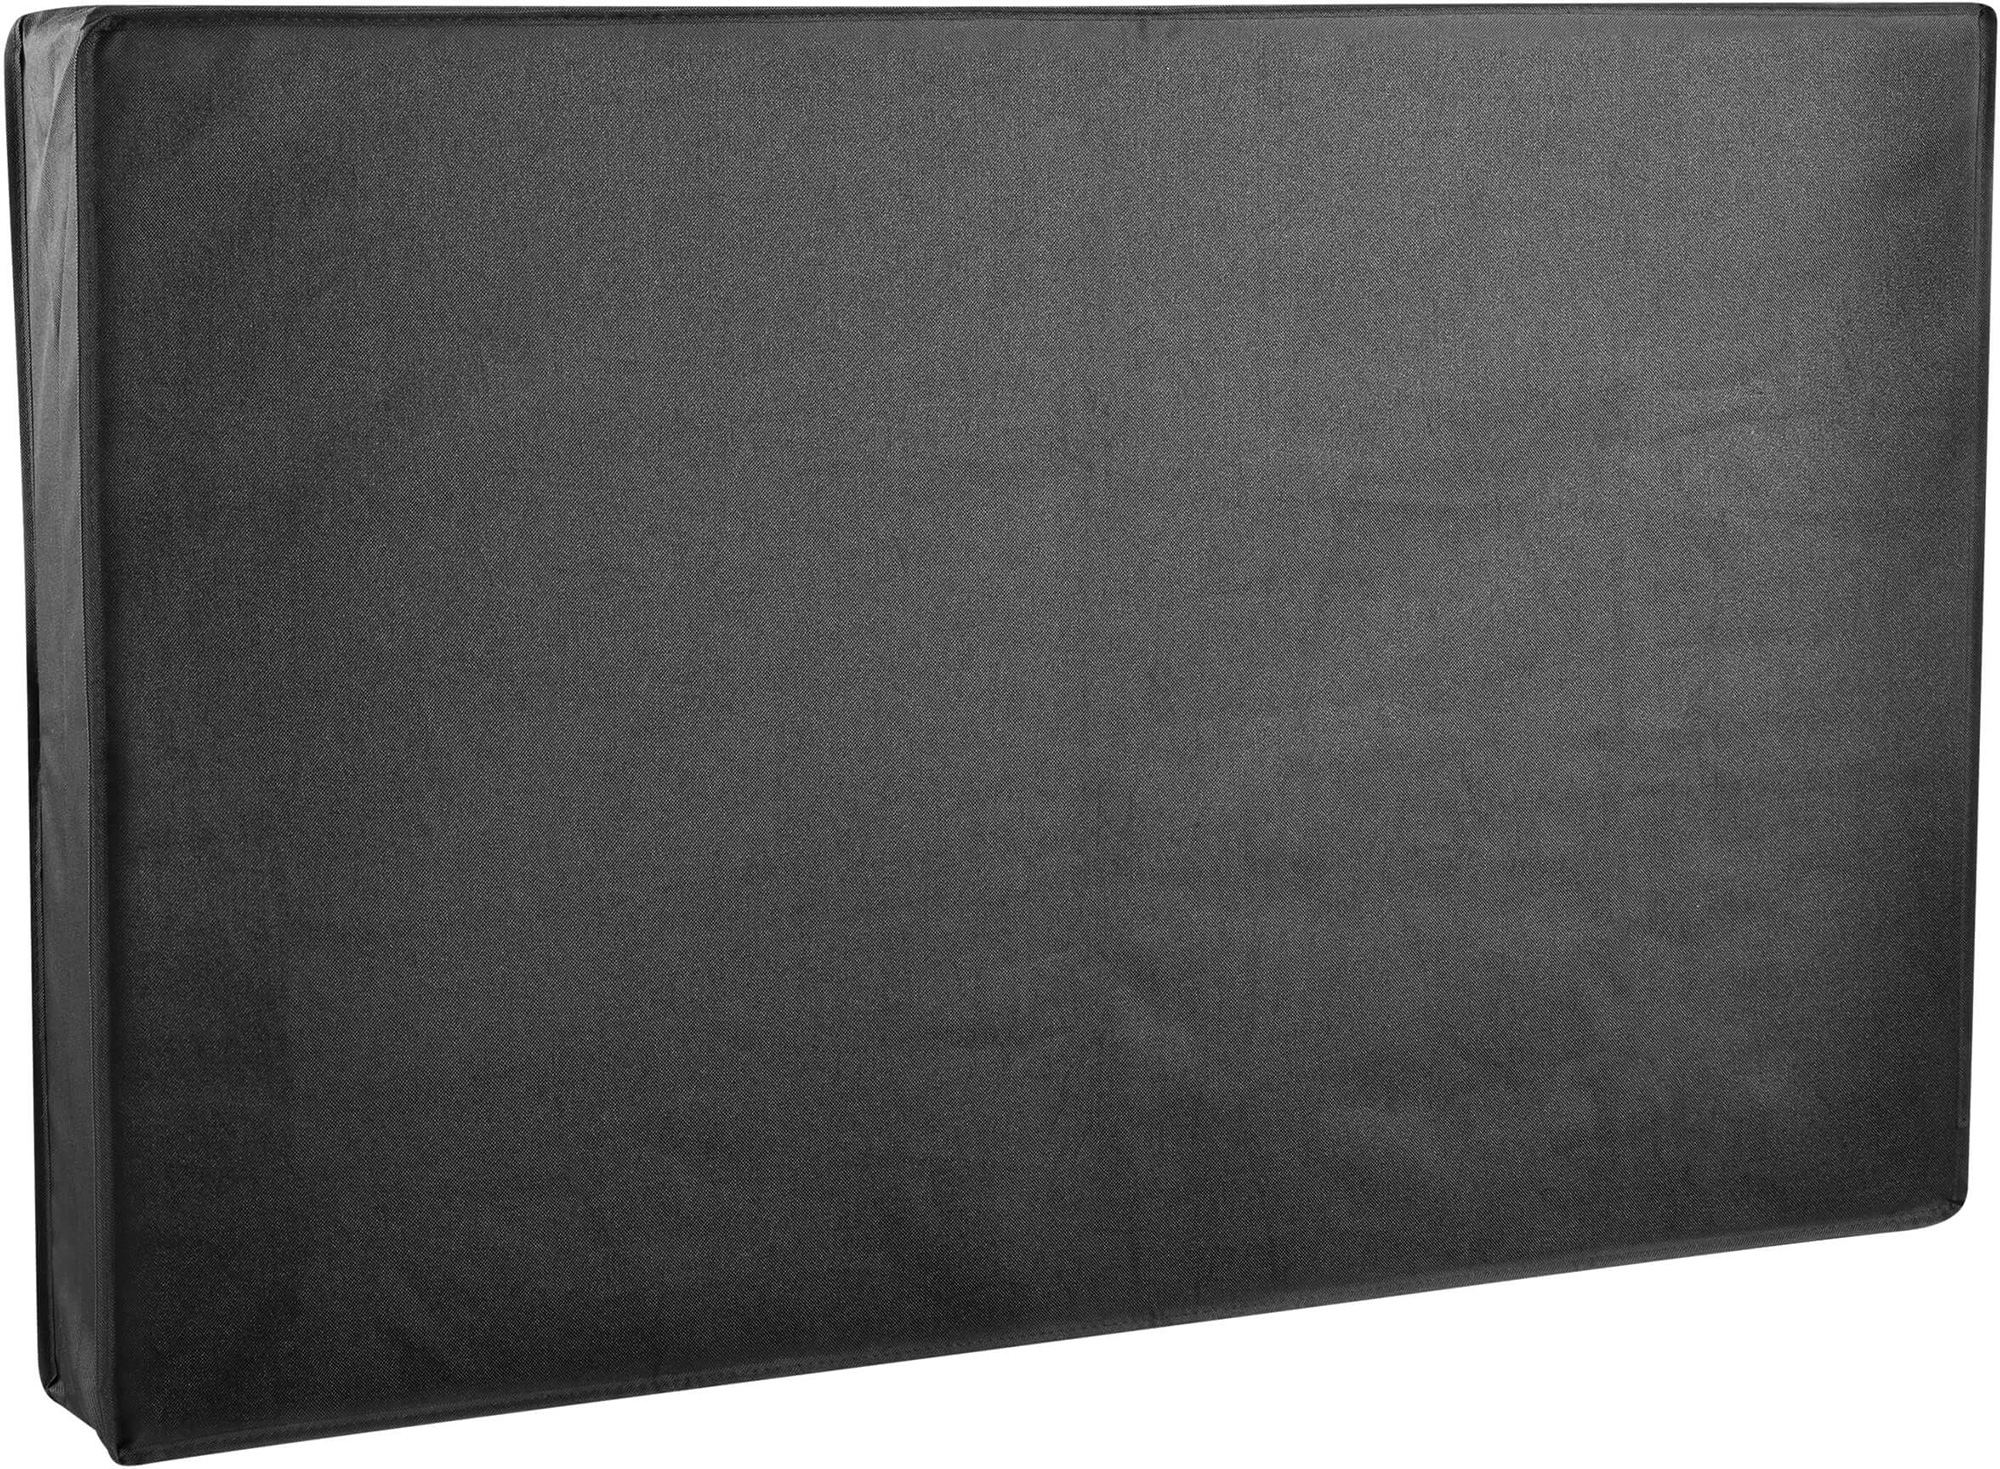 Tripp Lite DM6570COVER Weatherproof Outdoor TV Cover for 65-70 Inch TVs and Monitors TRL-DM6570COVER